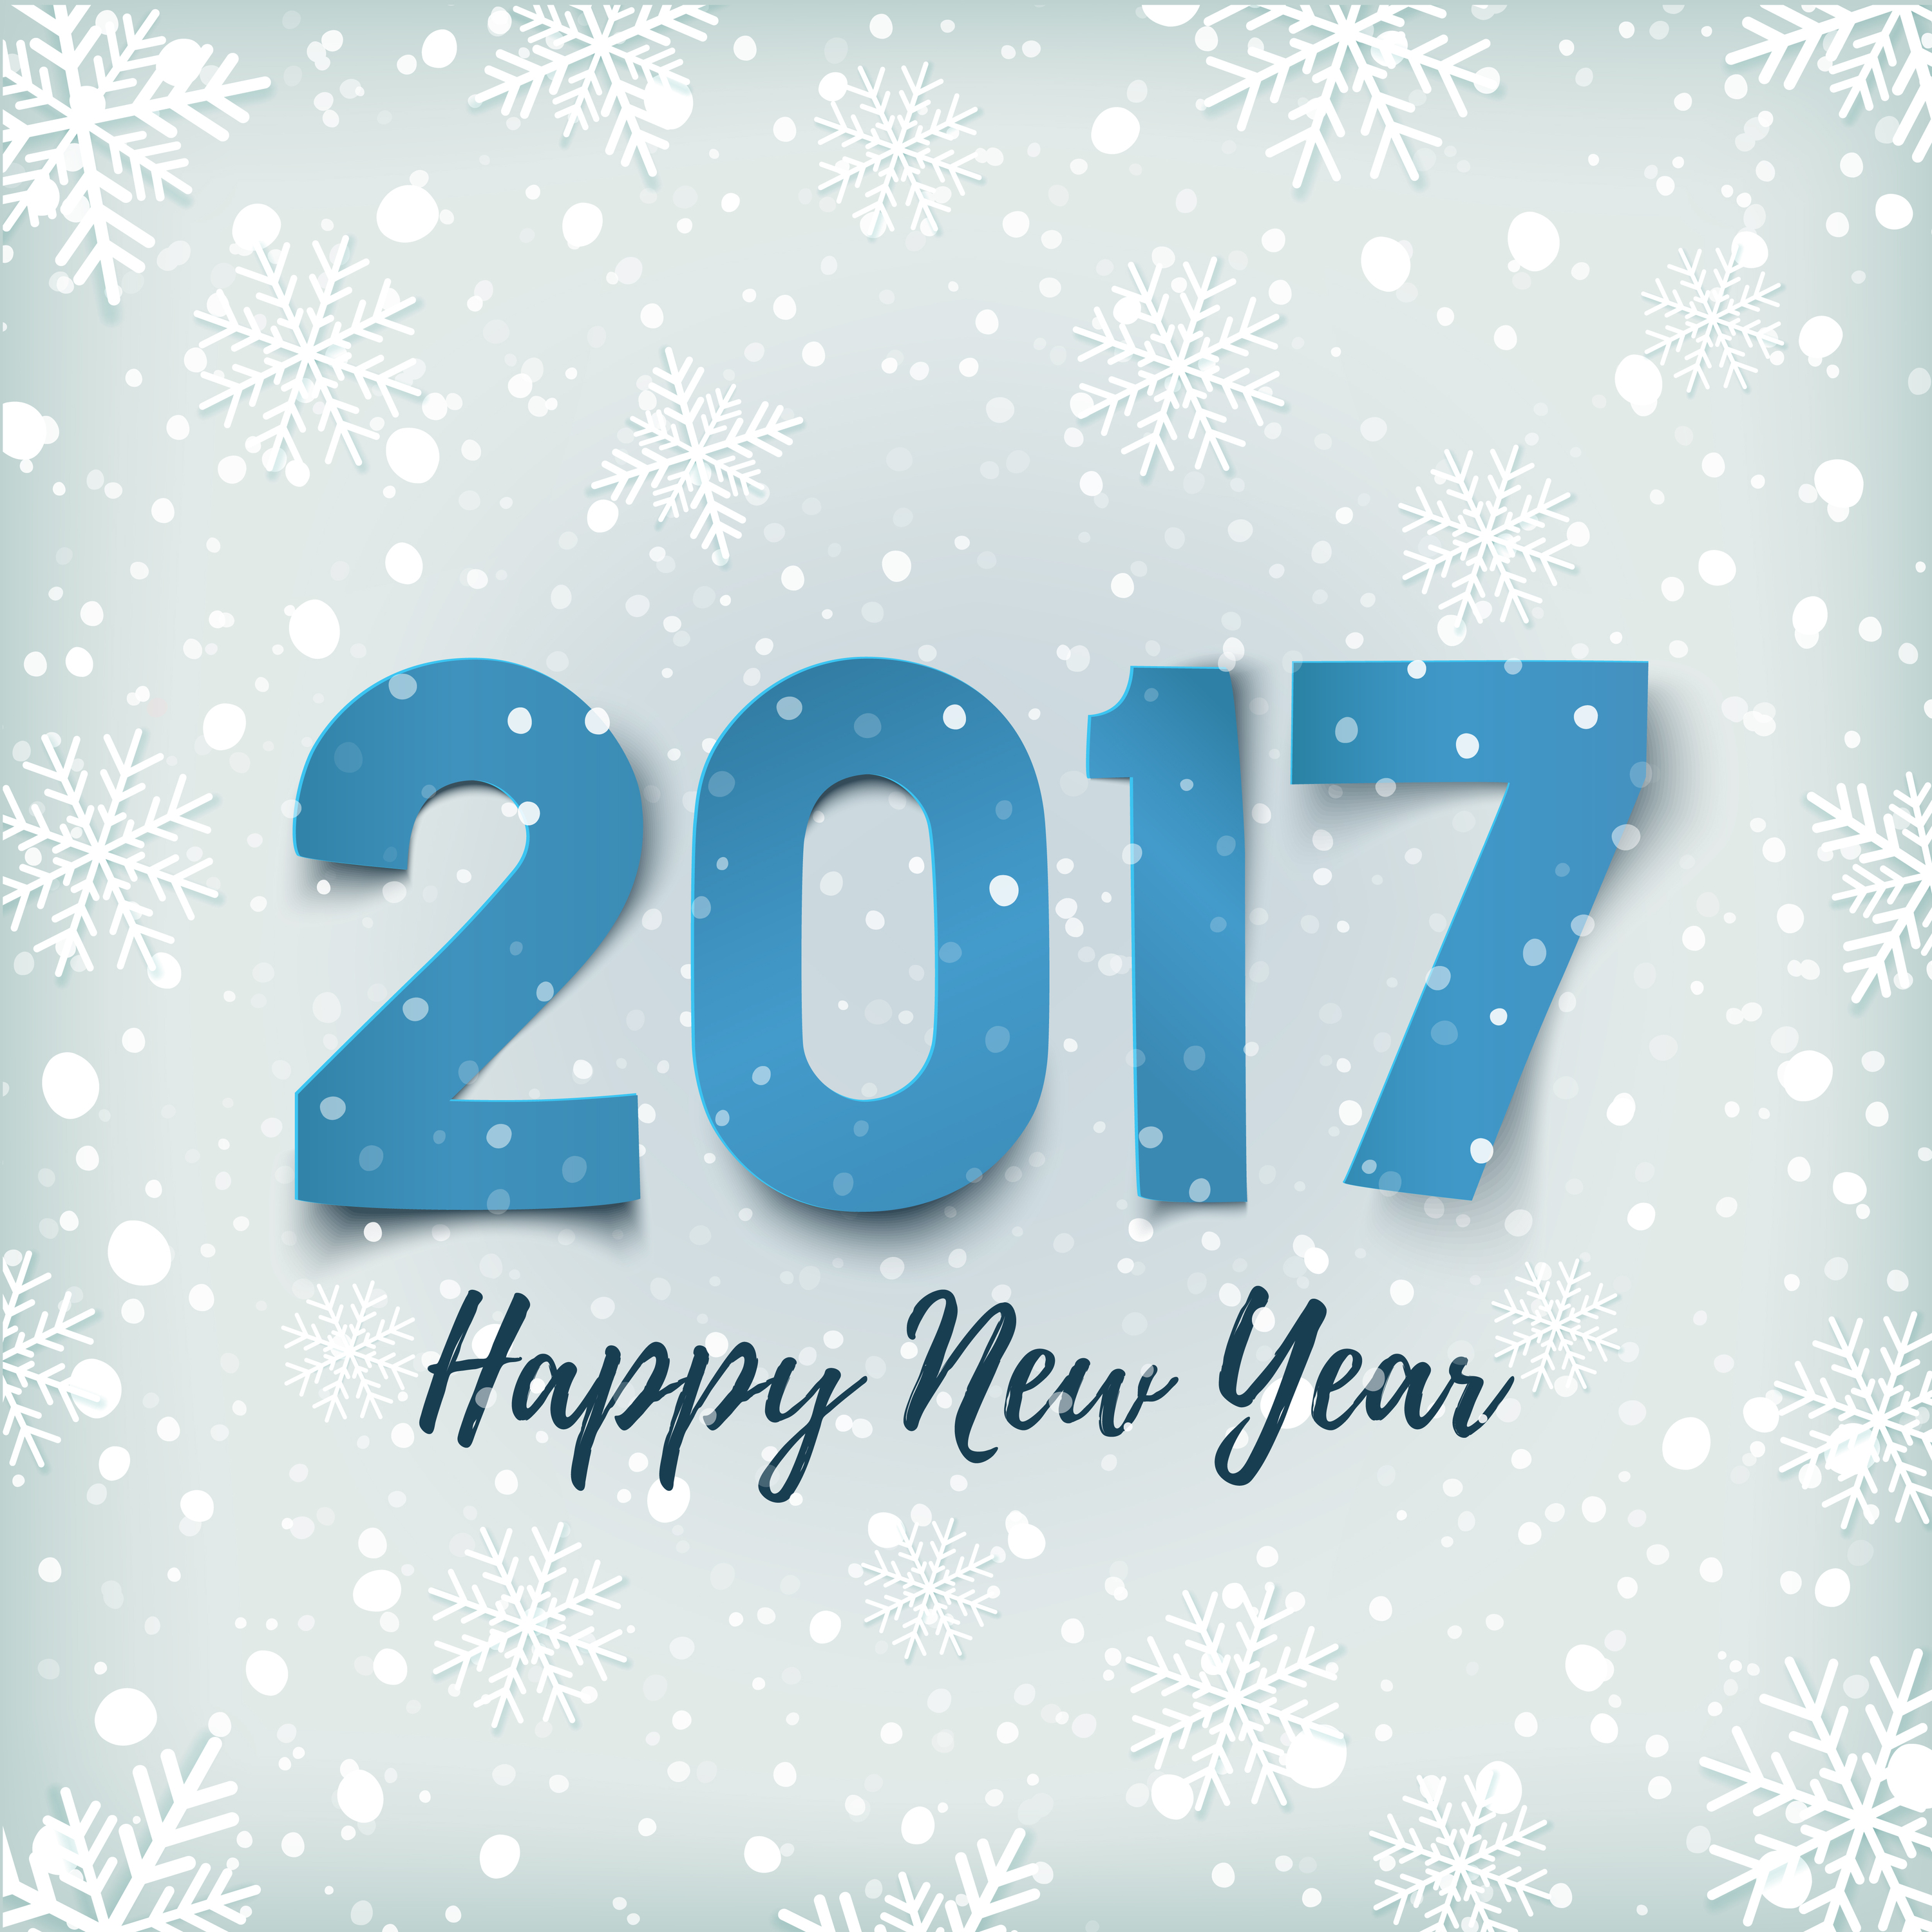 Wallpaper download dp - Download New Year Image For Whatsapp Dp Profile Pic